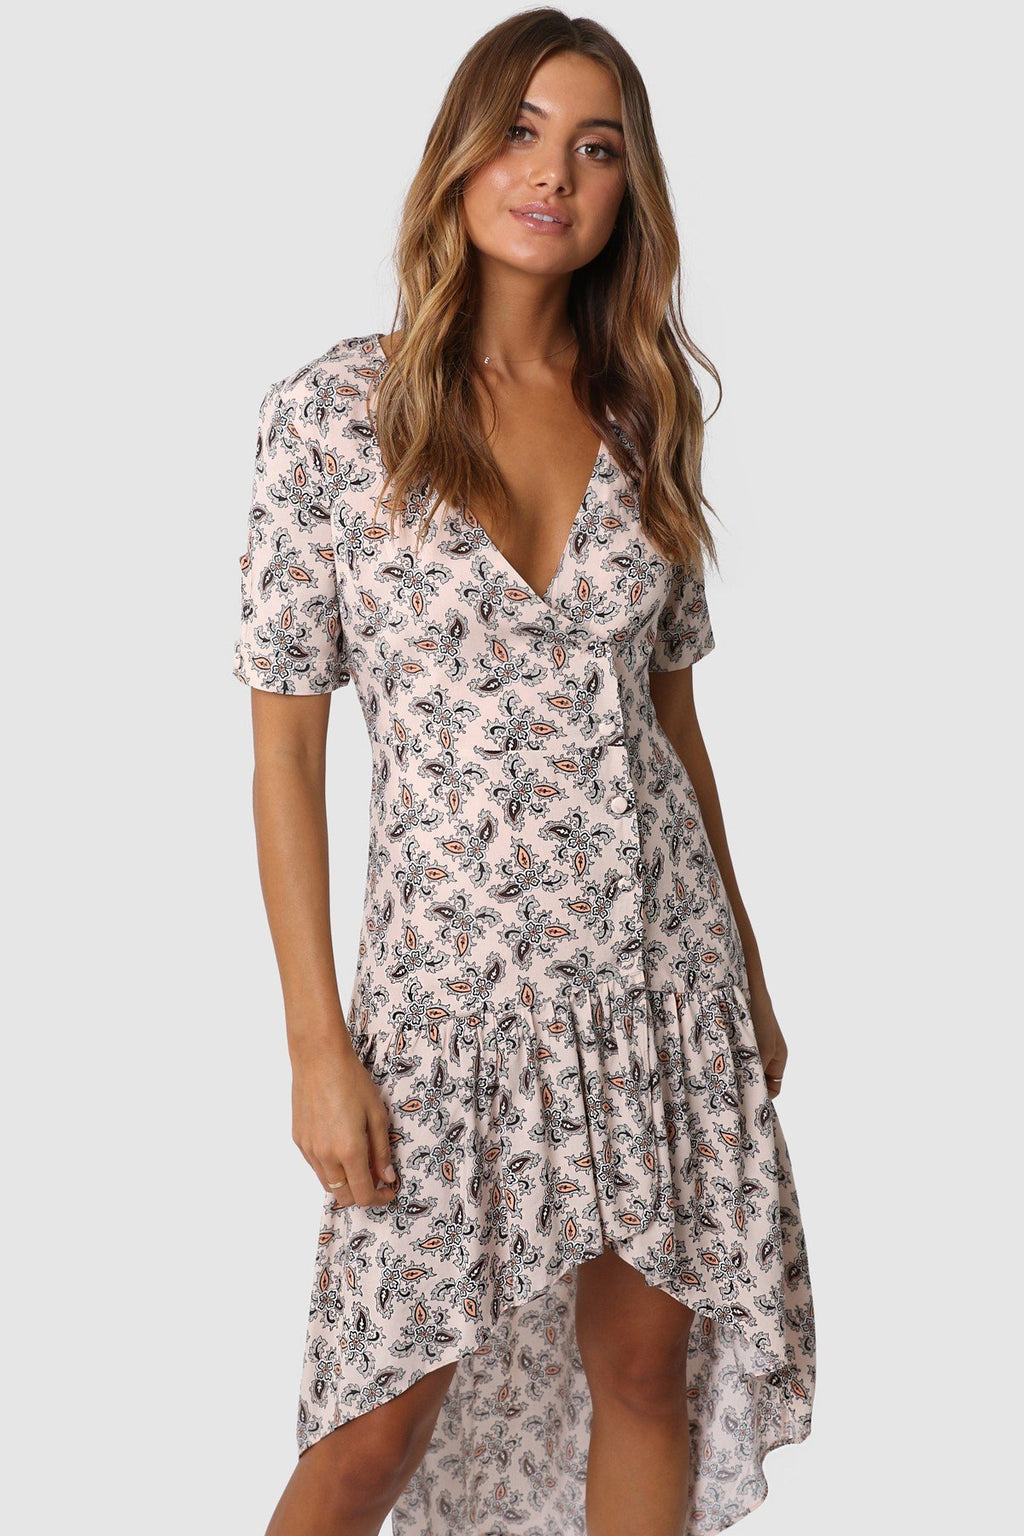 Lost in Lunar roxy maxi paisley print dress